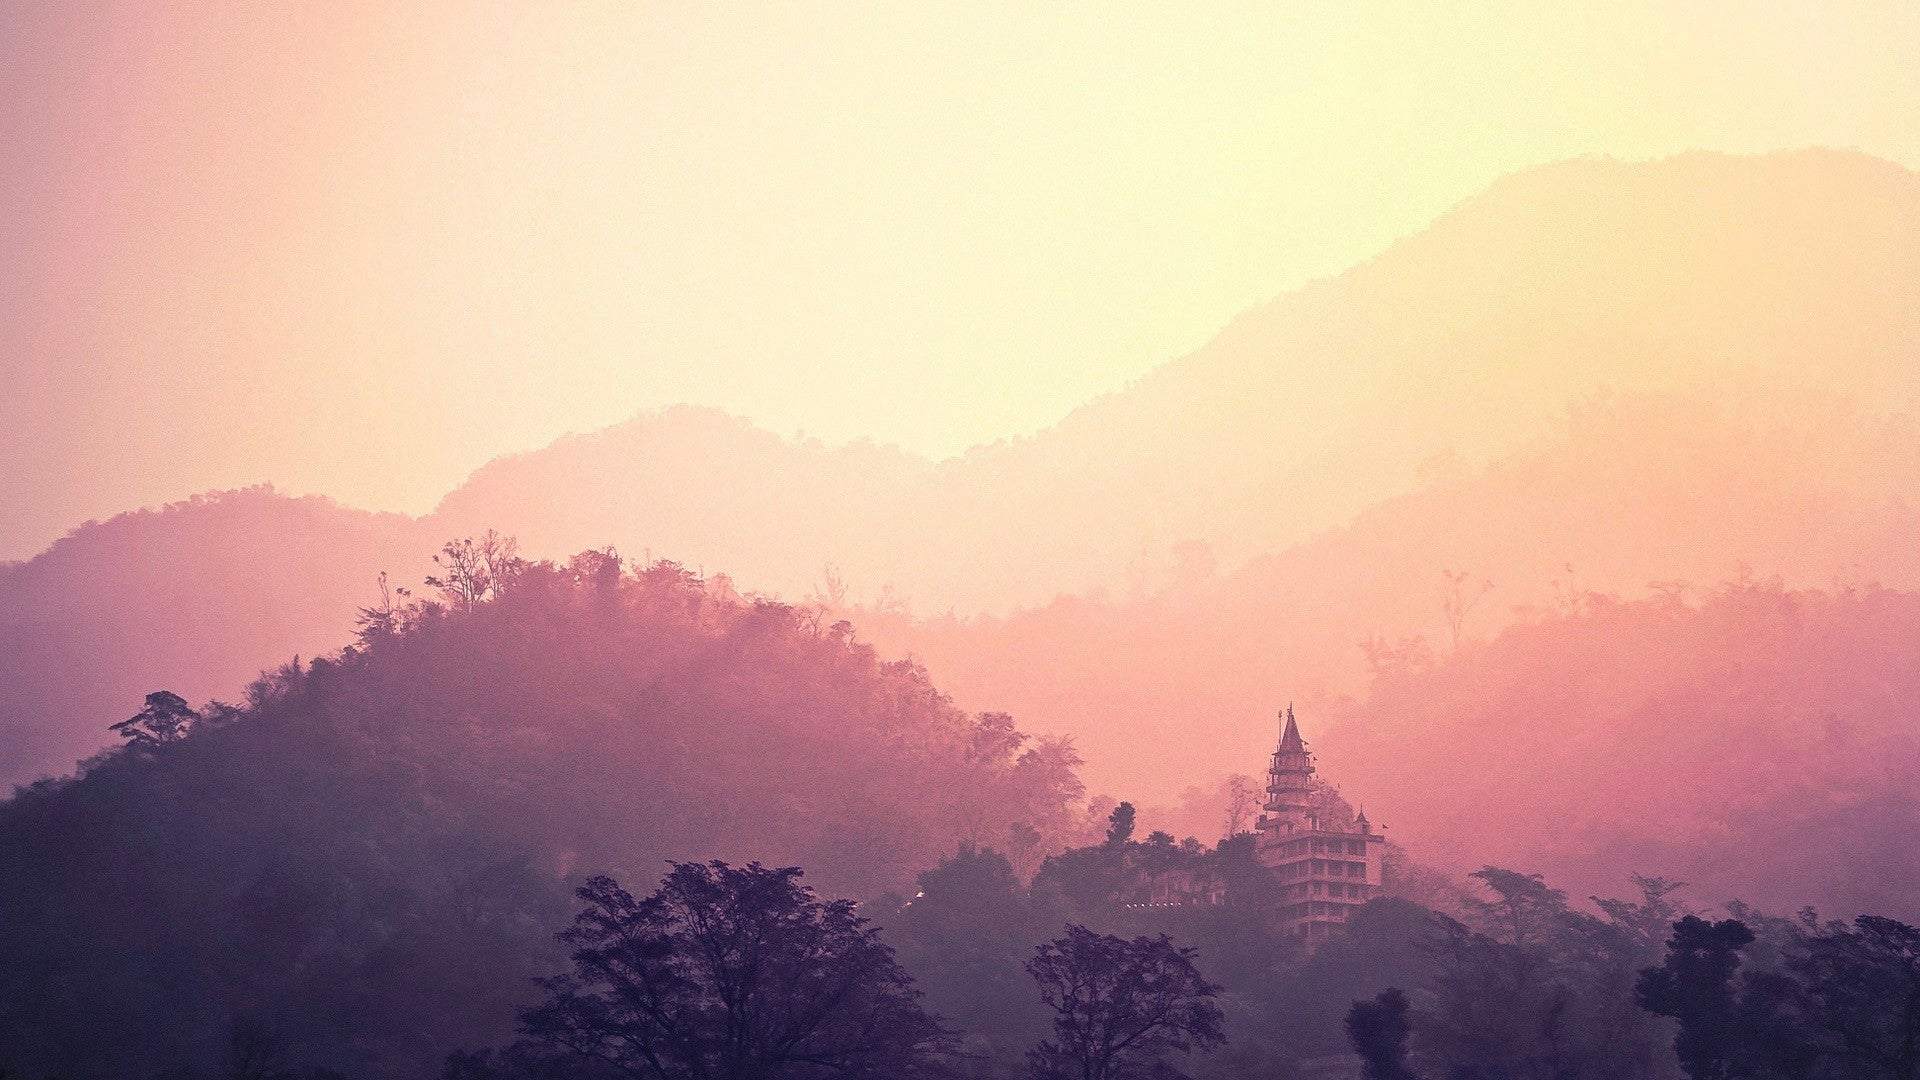 Yoga and Meditation Retreat in Rishikesh with Complete Unity Yoga